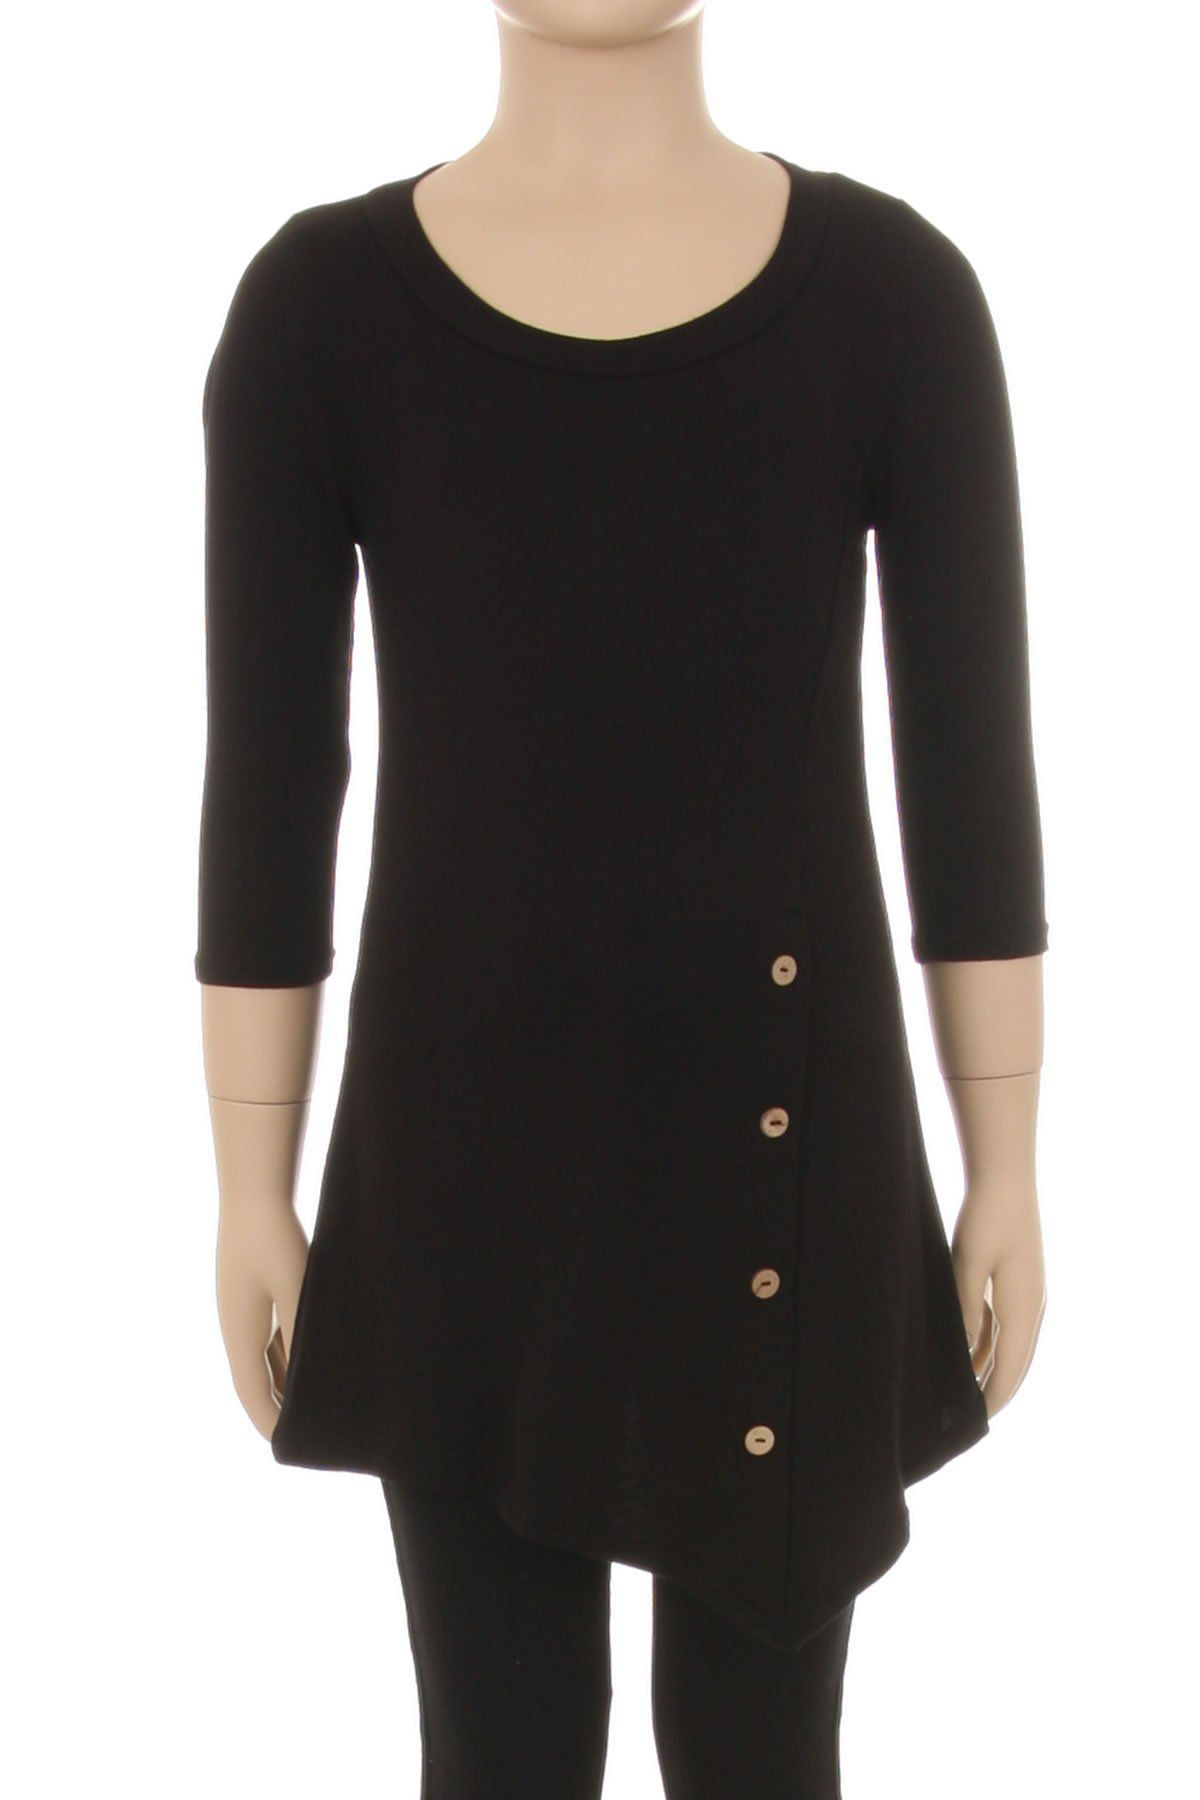 Girl's Black Tunic Dress Asymmetric Top: S/M/L/XL - MomMe and More